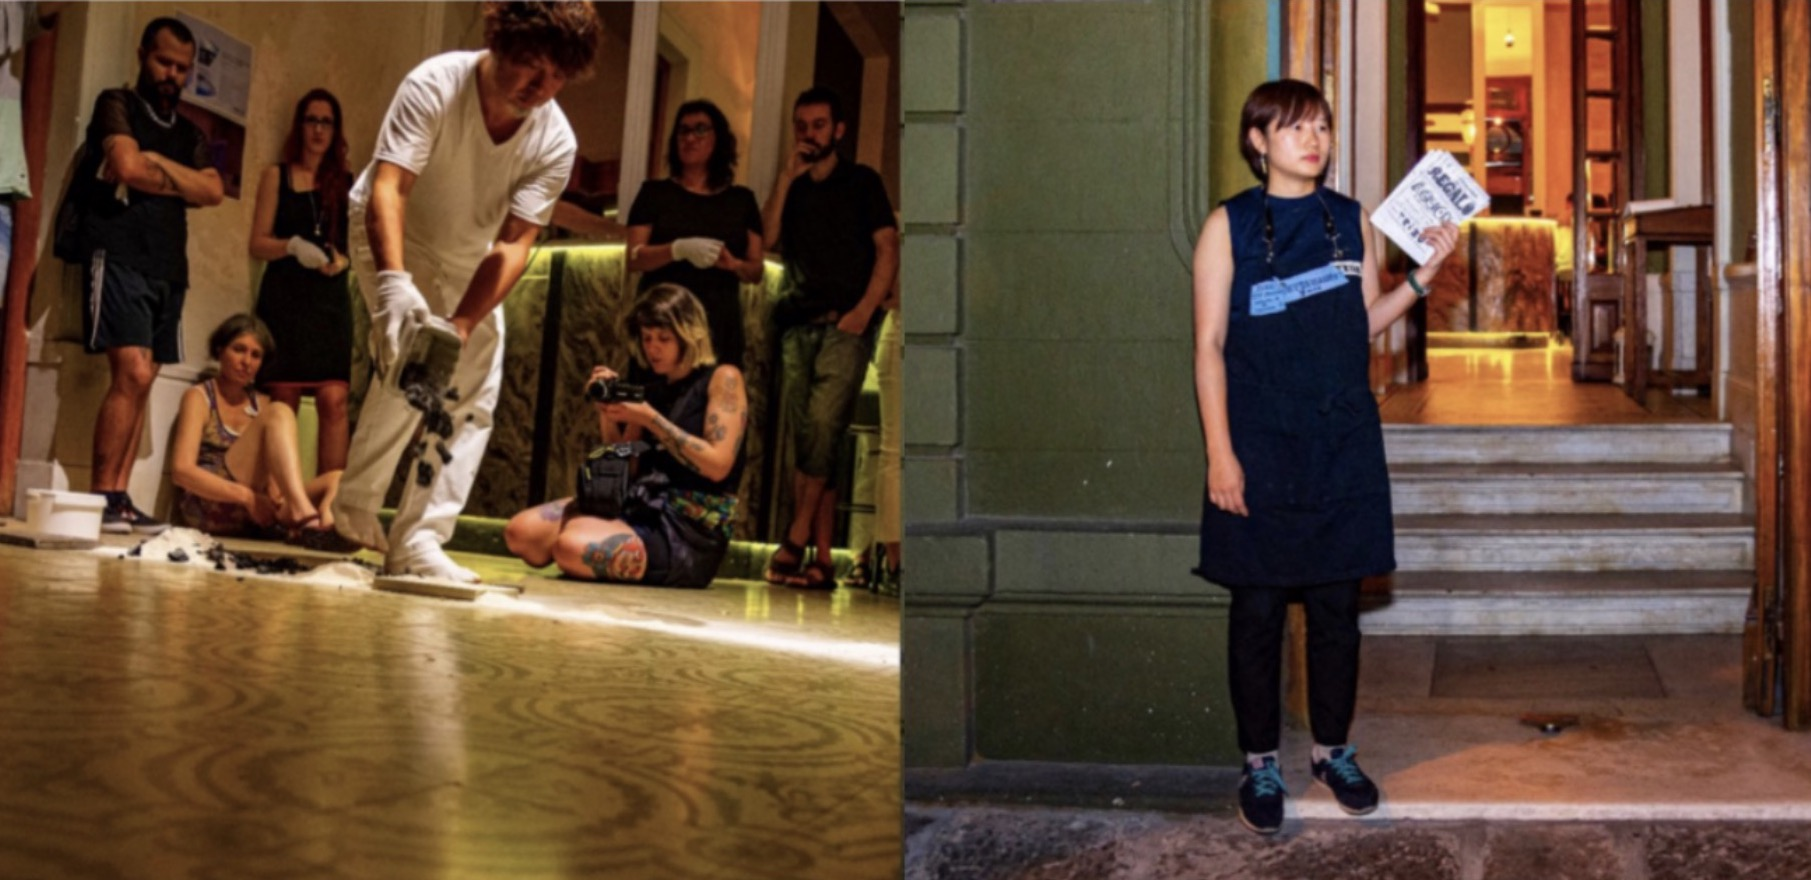 ipamia event 9 : 南米のパフォーマンスアートの活動報告 report of performance art in South America